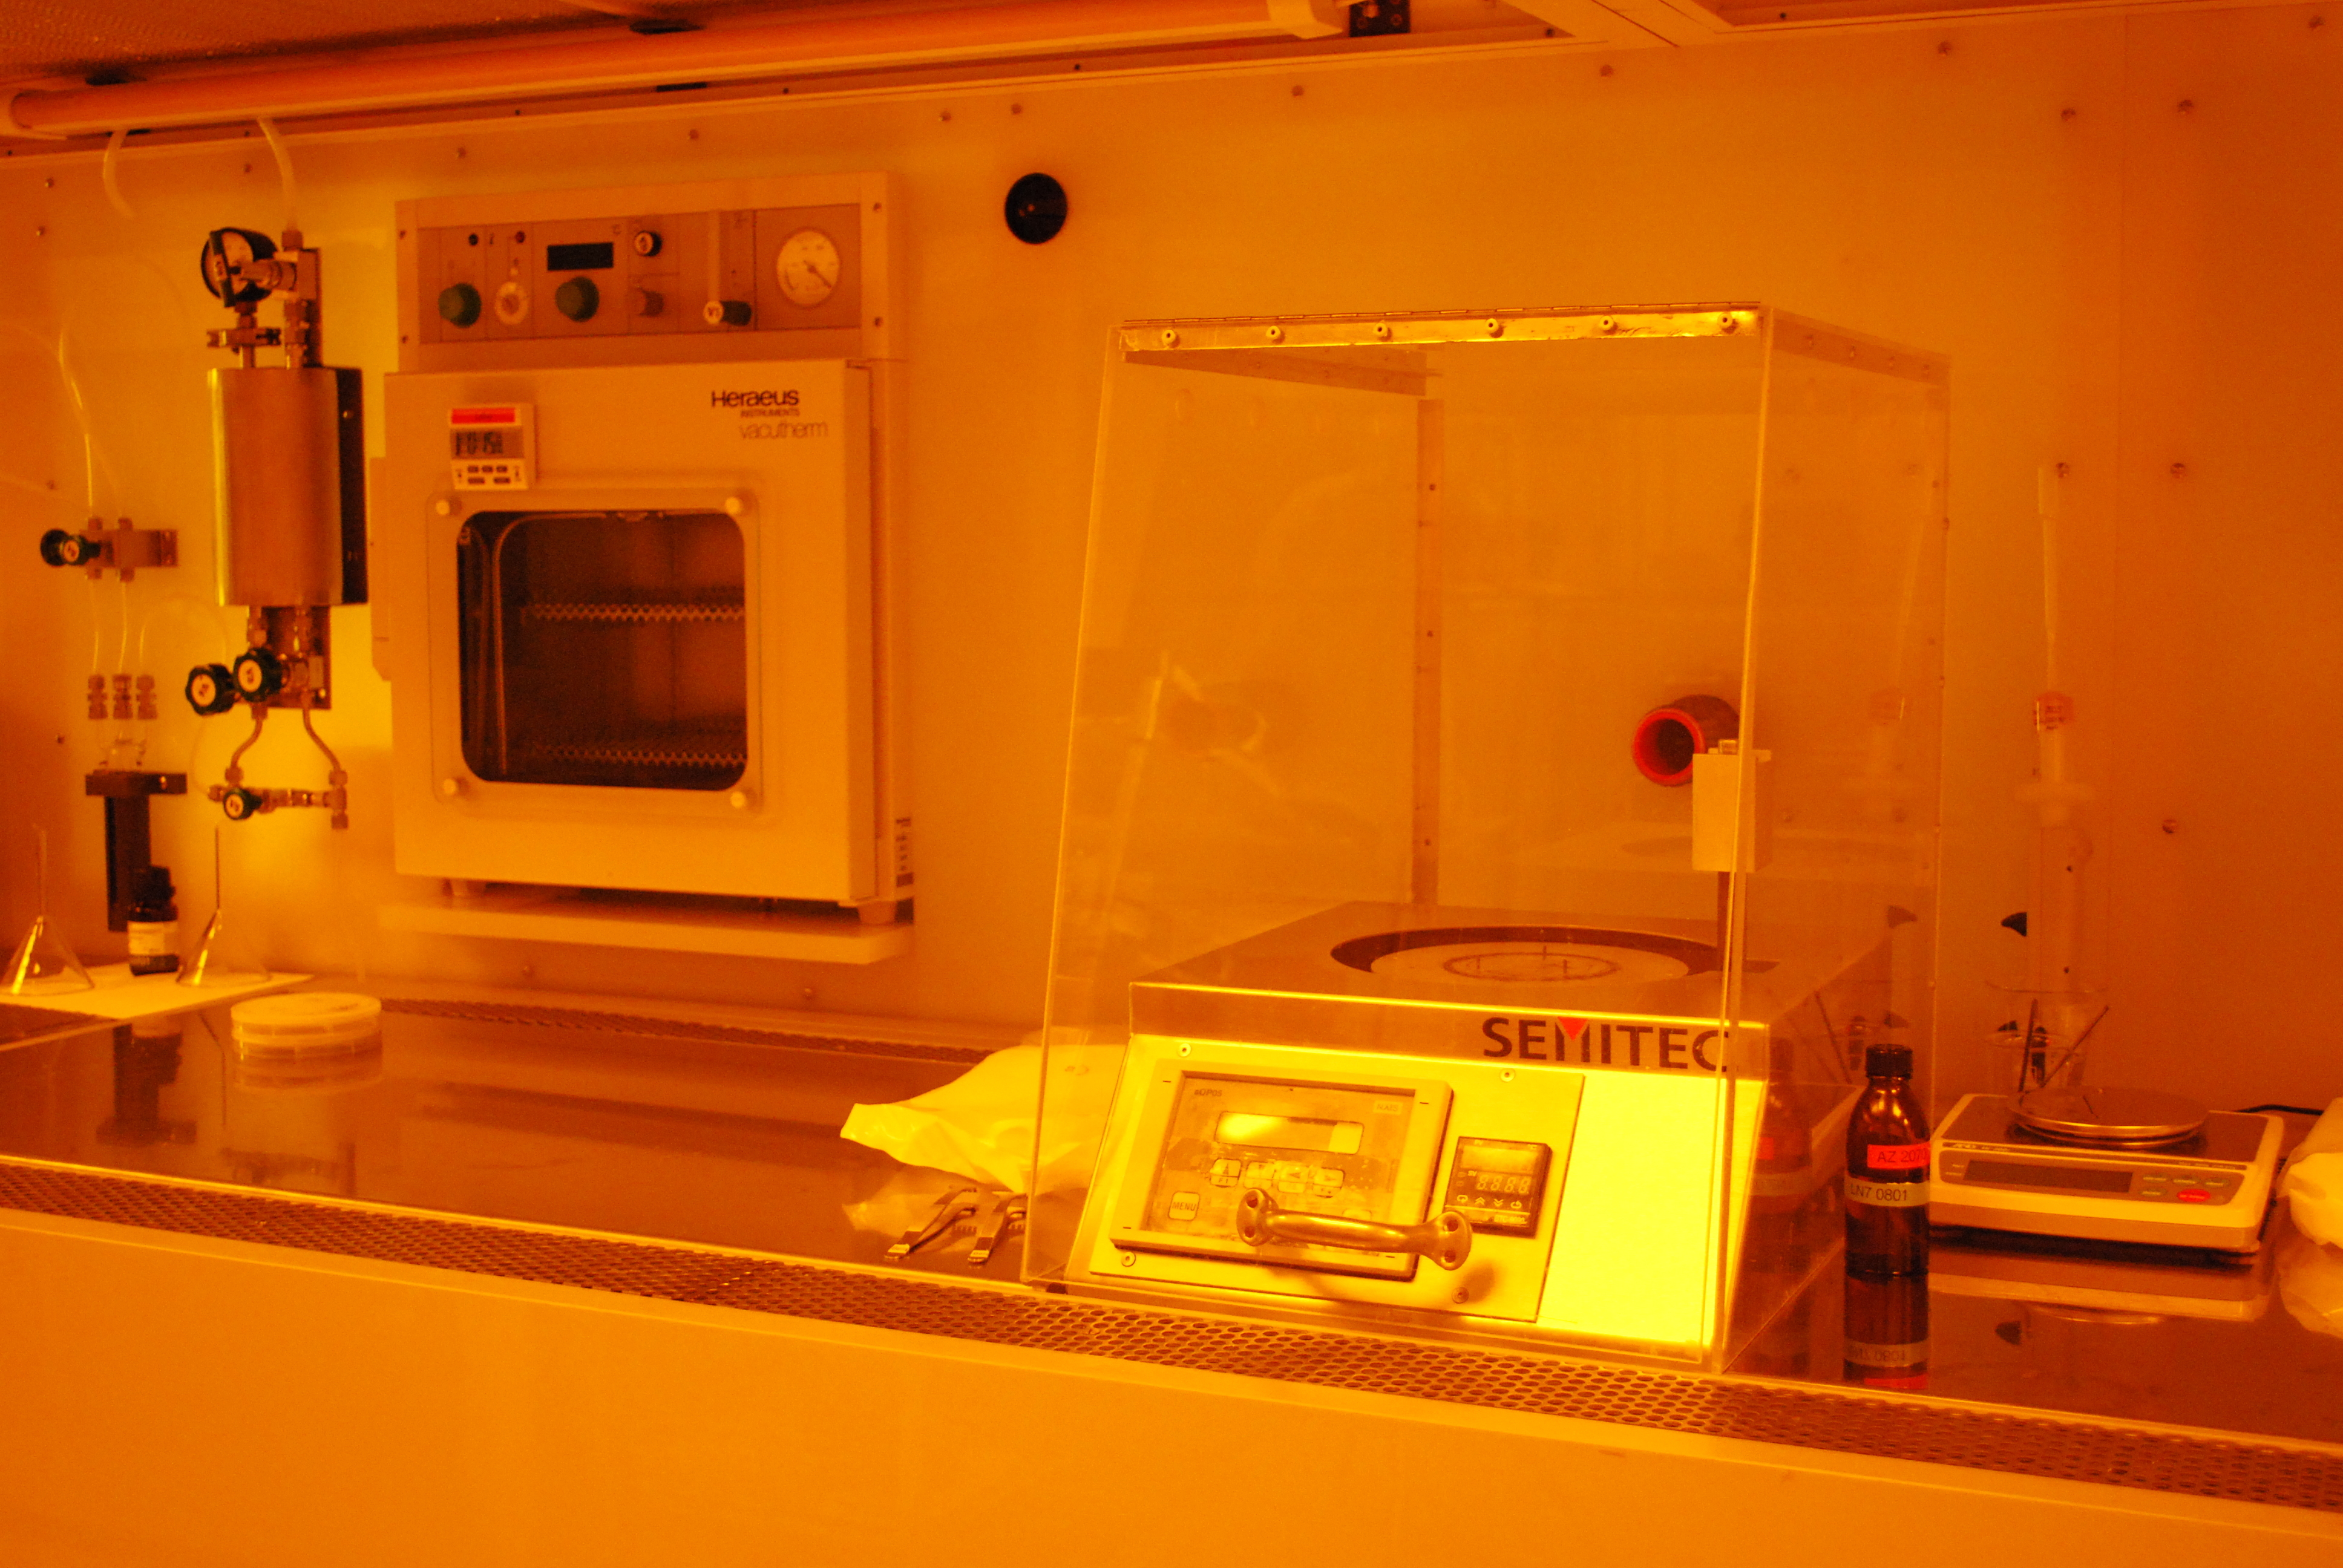 Oven and photoresist spin coater